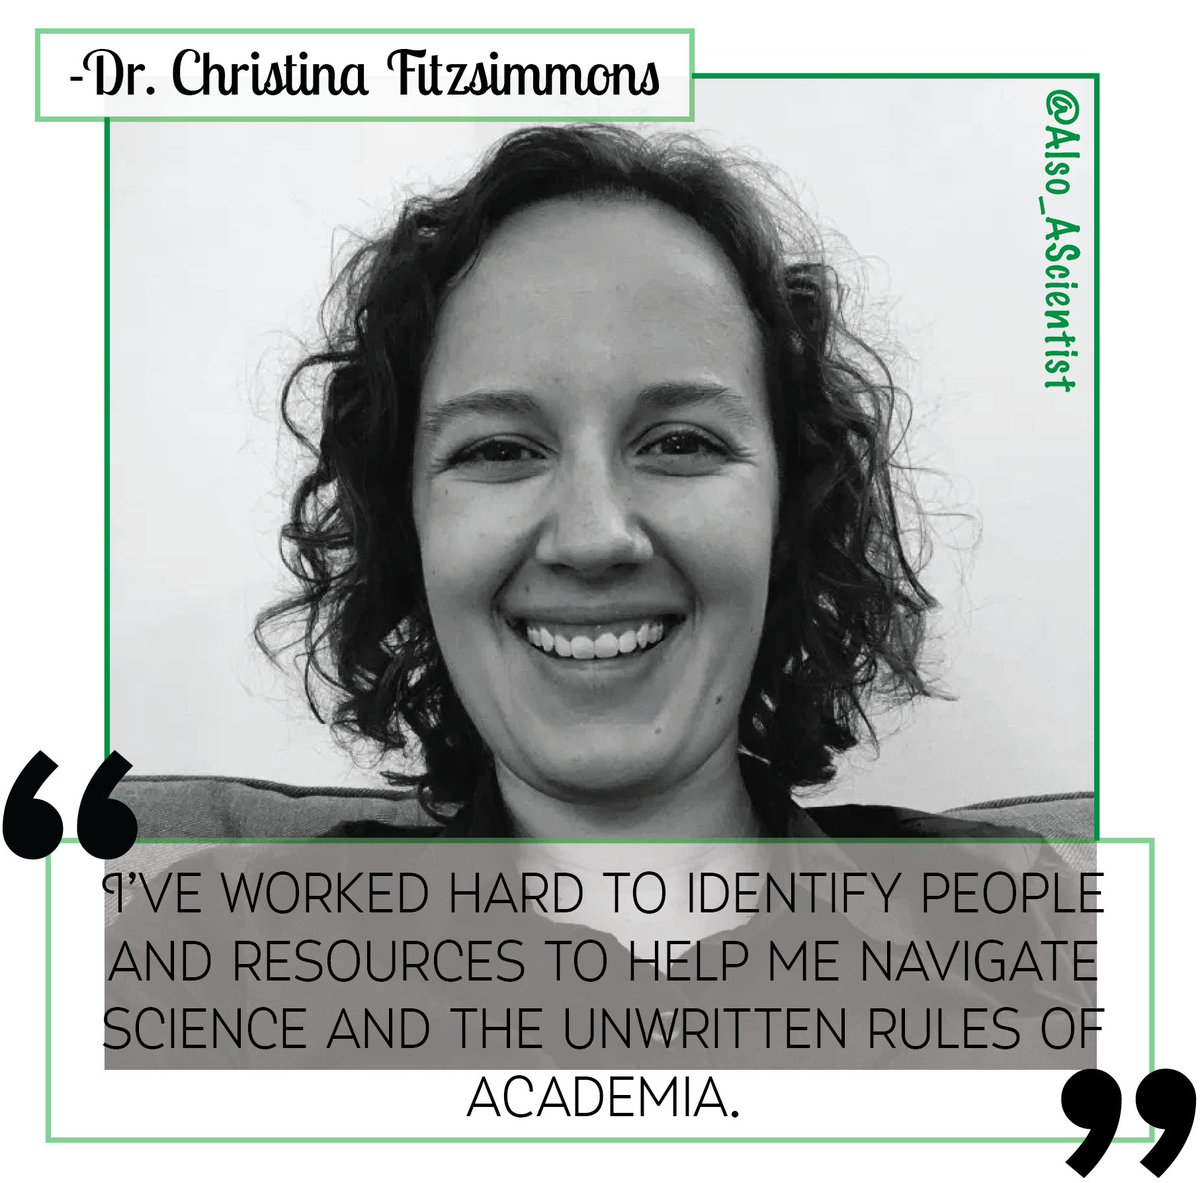 Meet @FitzsimmonsCM! Shes a postdoc @NCIResearchCtr studying how changes in the cell metabolic rates influence gene expression & RNA modification. Outside of lab, you can find her hiking, playing board games, or reading sci-fi! #WomenInSTEM ✨ow.ly/5H8N50ytjnO✨